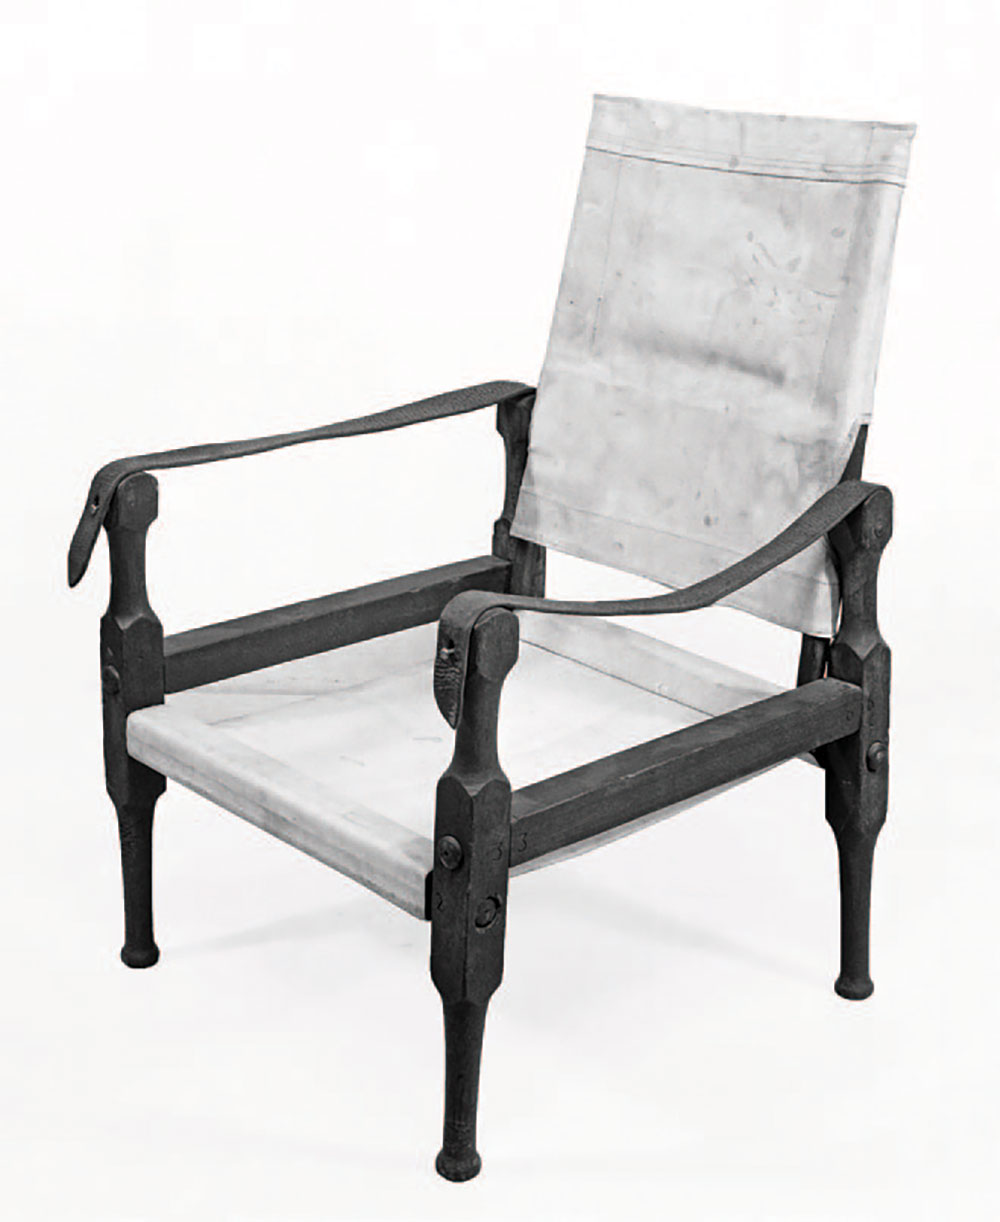 Though They Use Different Joinery And Turnings, These Roorkee Chairs  Function In The Same Manner